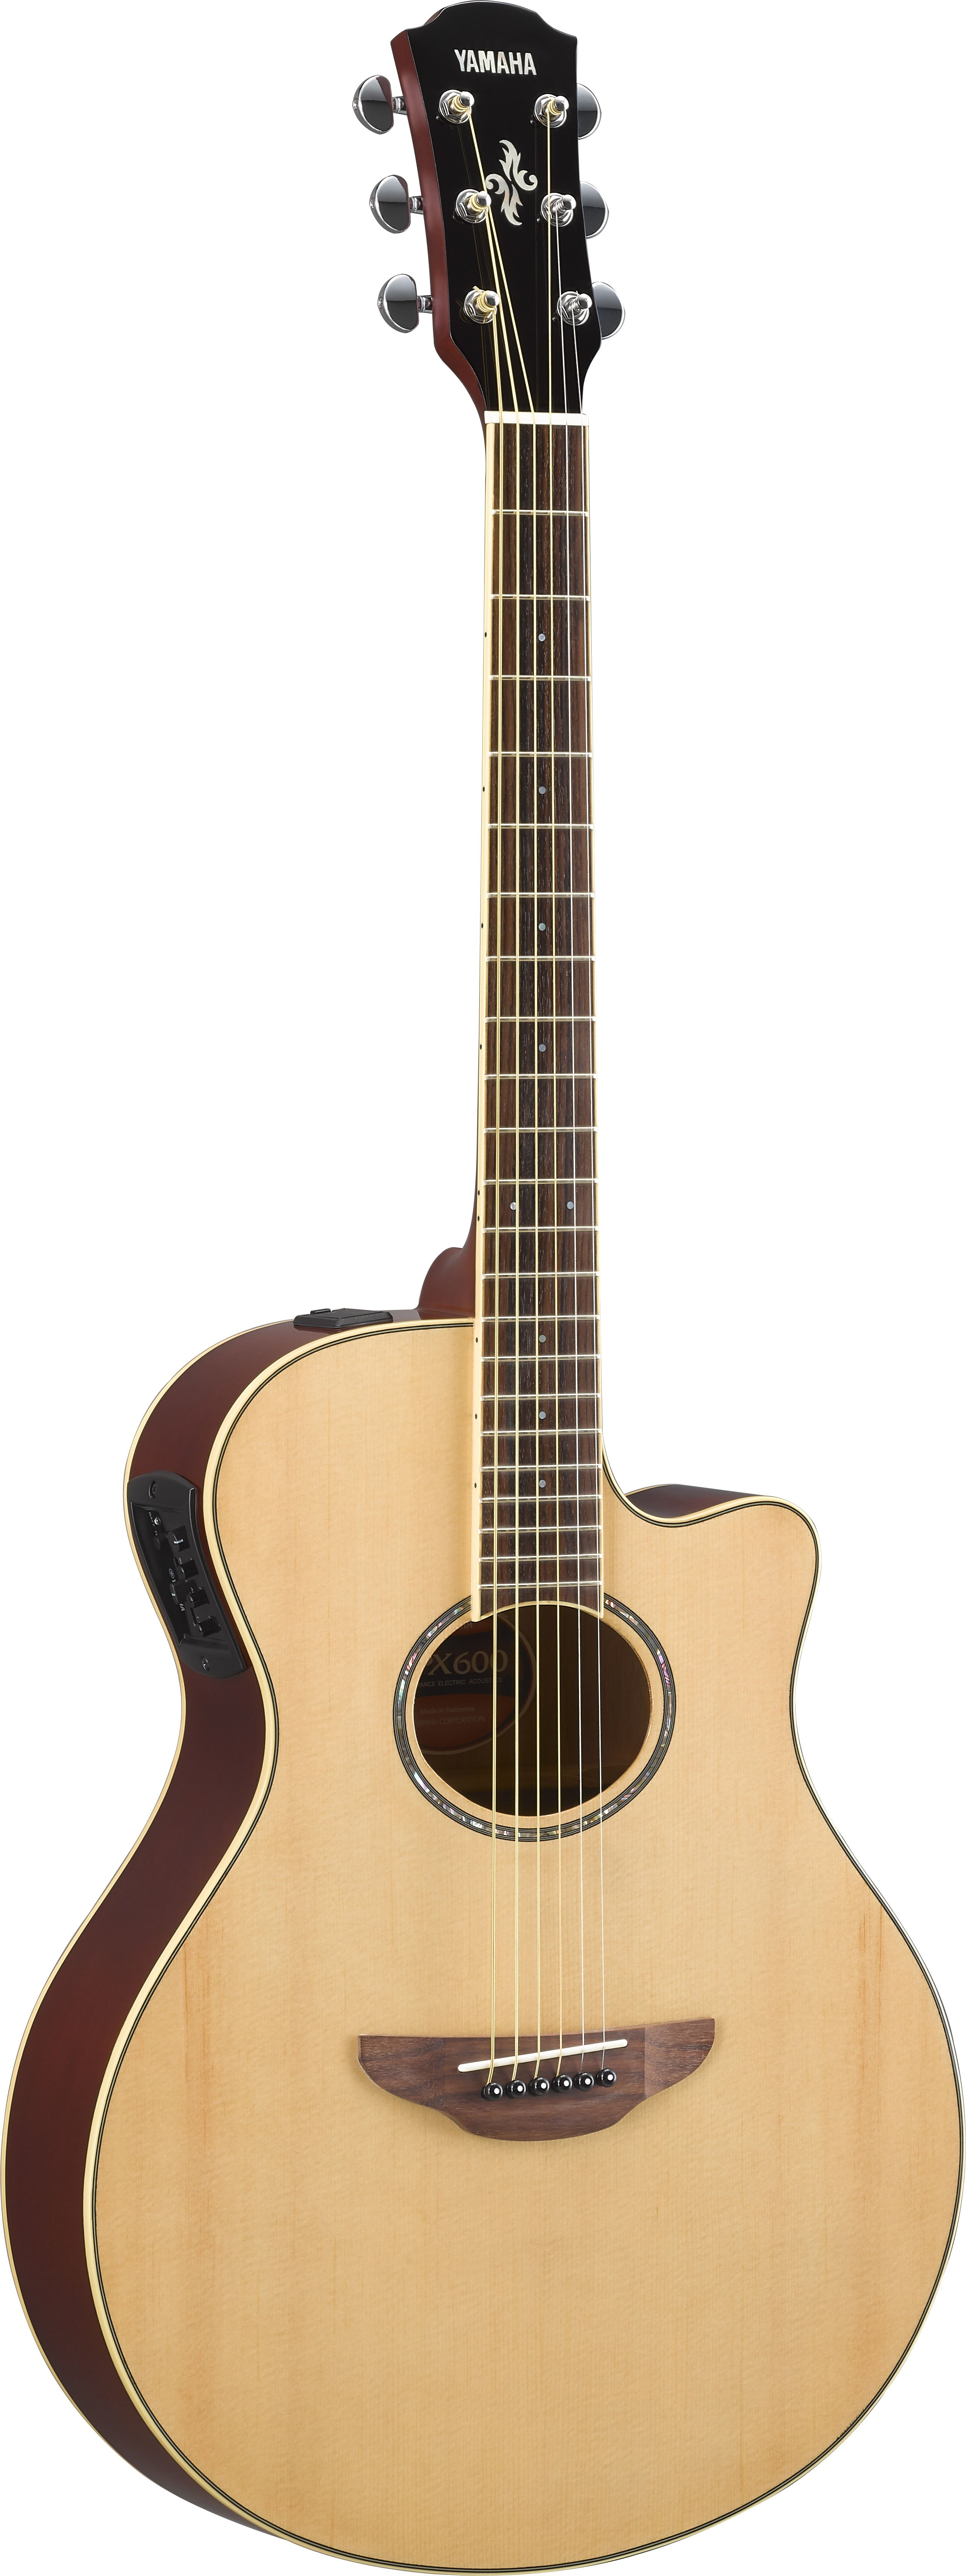 apx overview acoustic guitars guitars basses musical instruments products yamaha. Black Bedroom Furniture Sets. Home Design Ideas